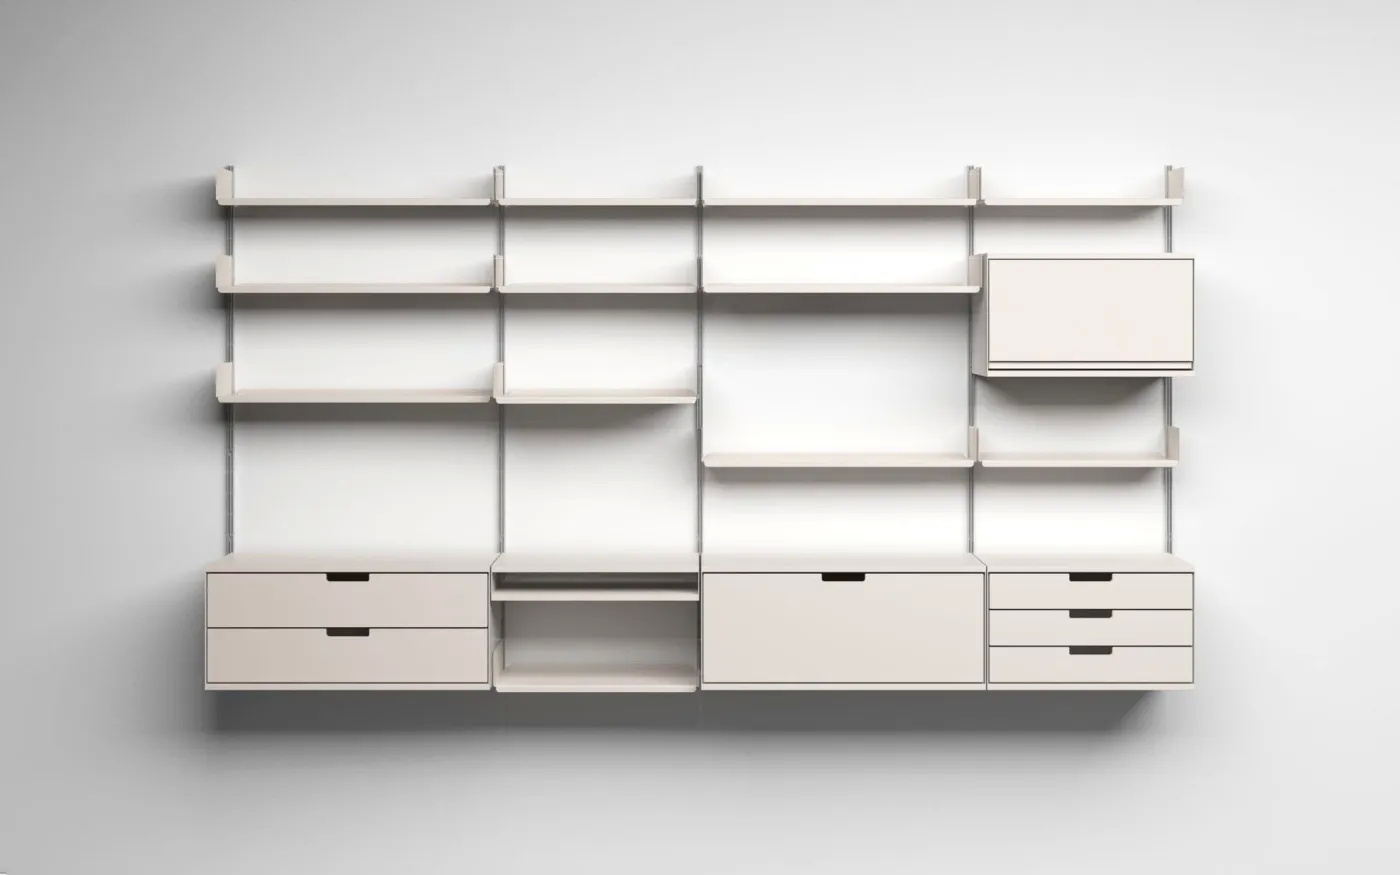 Vitsœ 606 Universal Shelving System, 1960, by Dieter Rams. Image credit: Sgustok Design